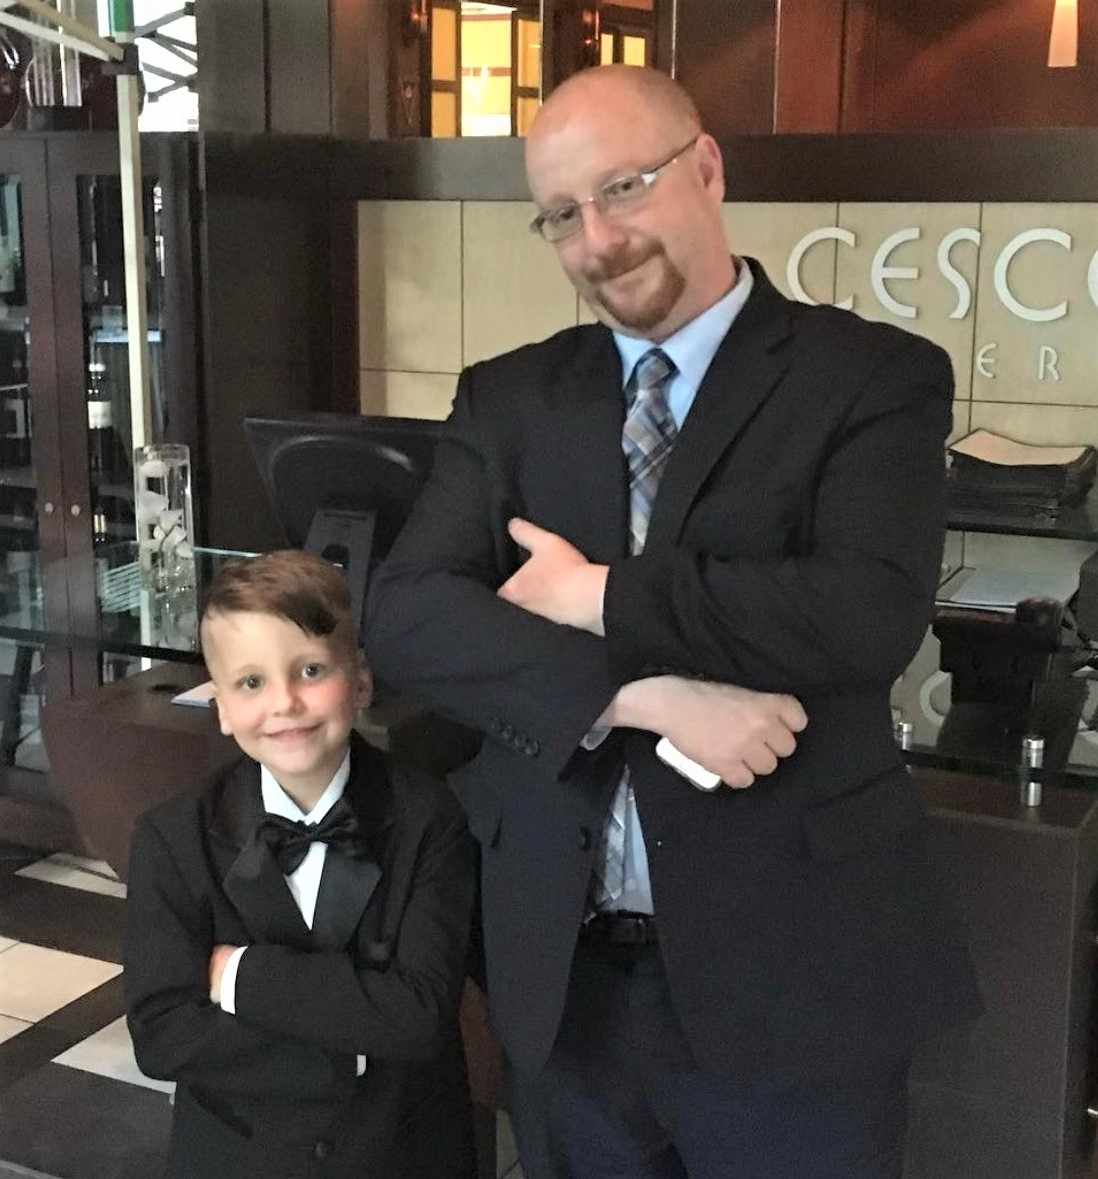 picture of Chef Laurence Cohen and his son dressed up in suit and tie